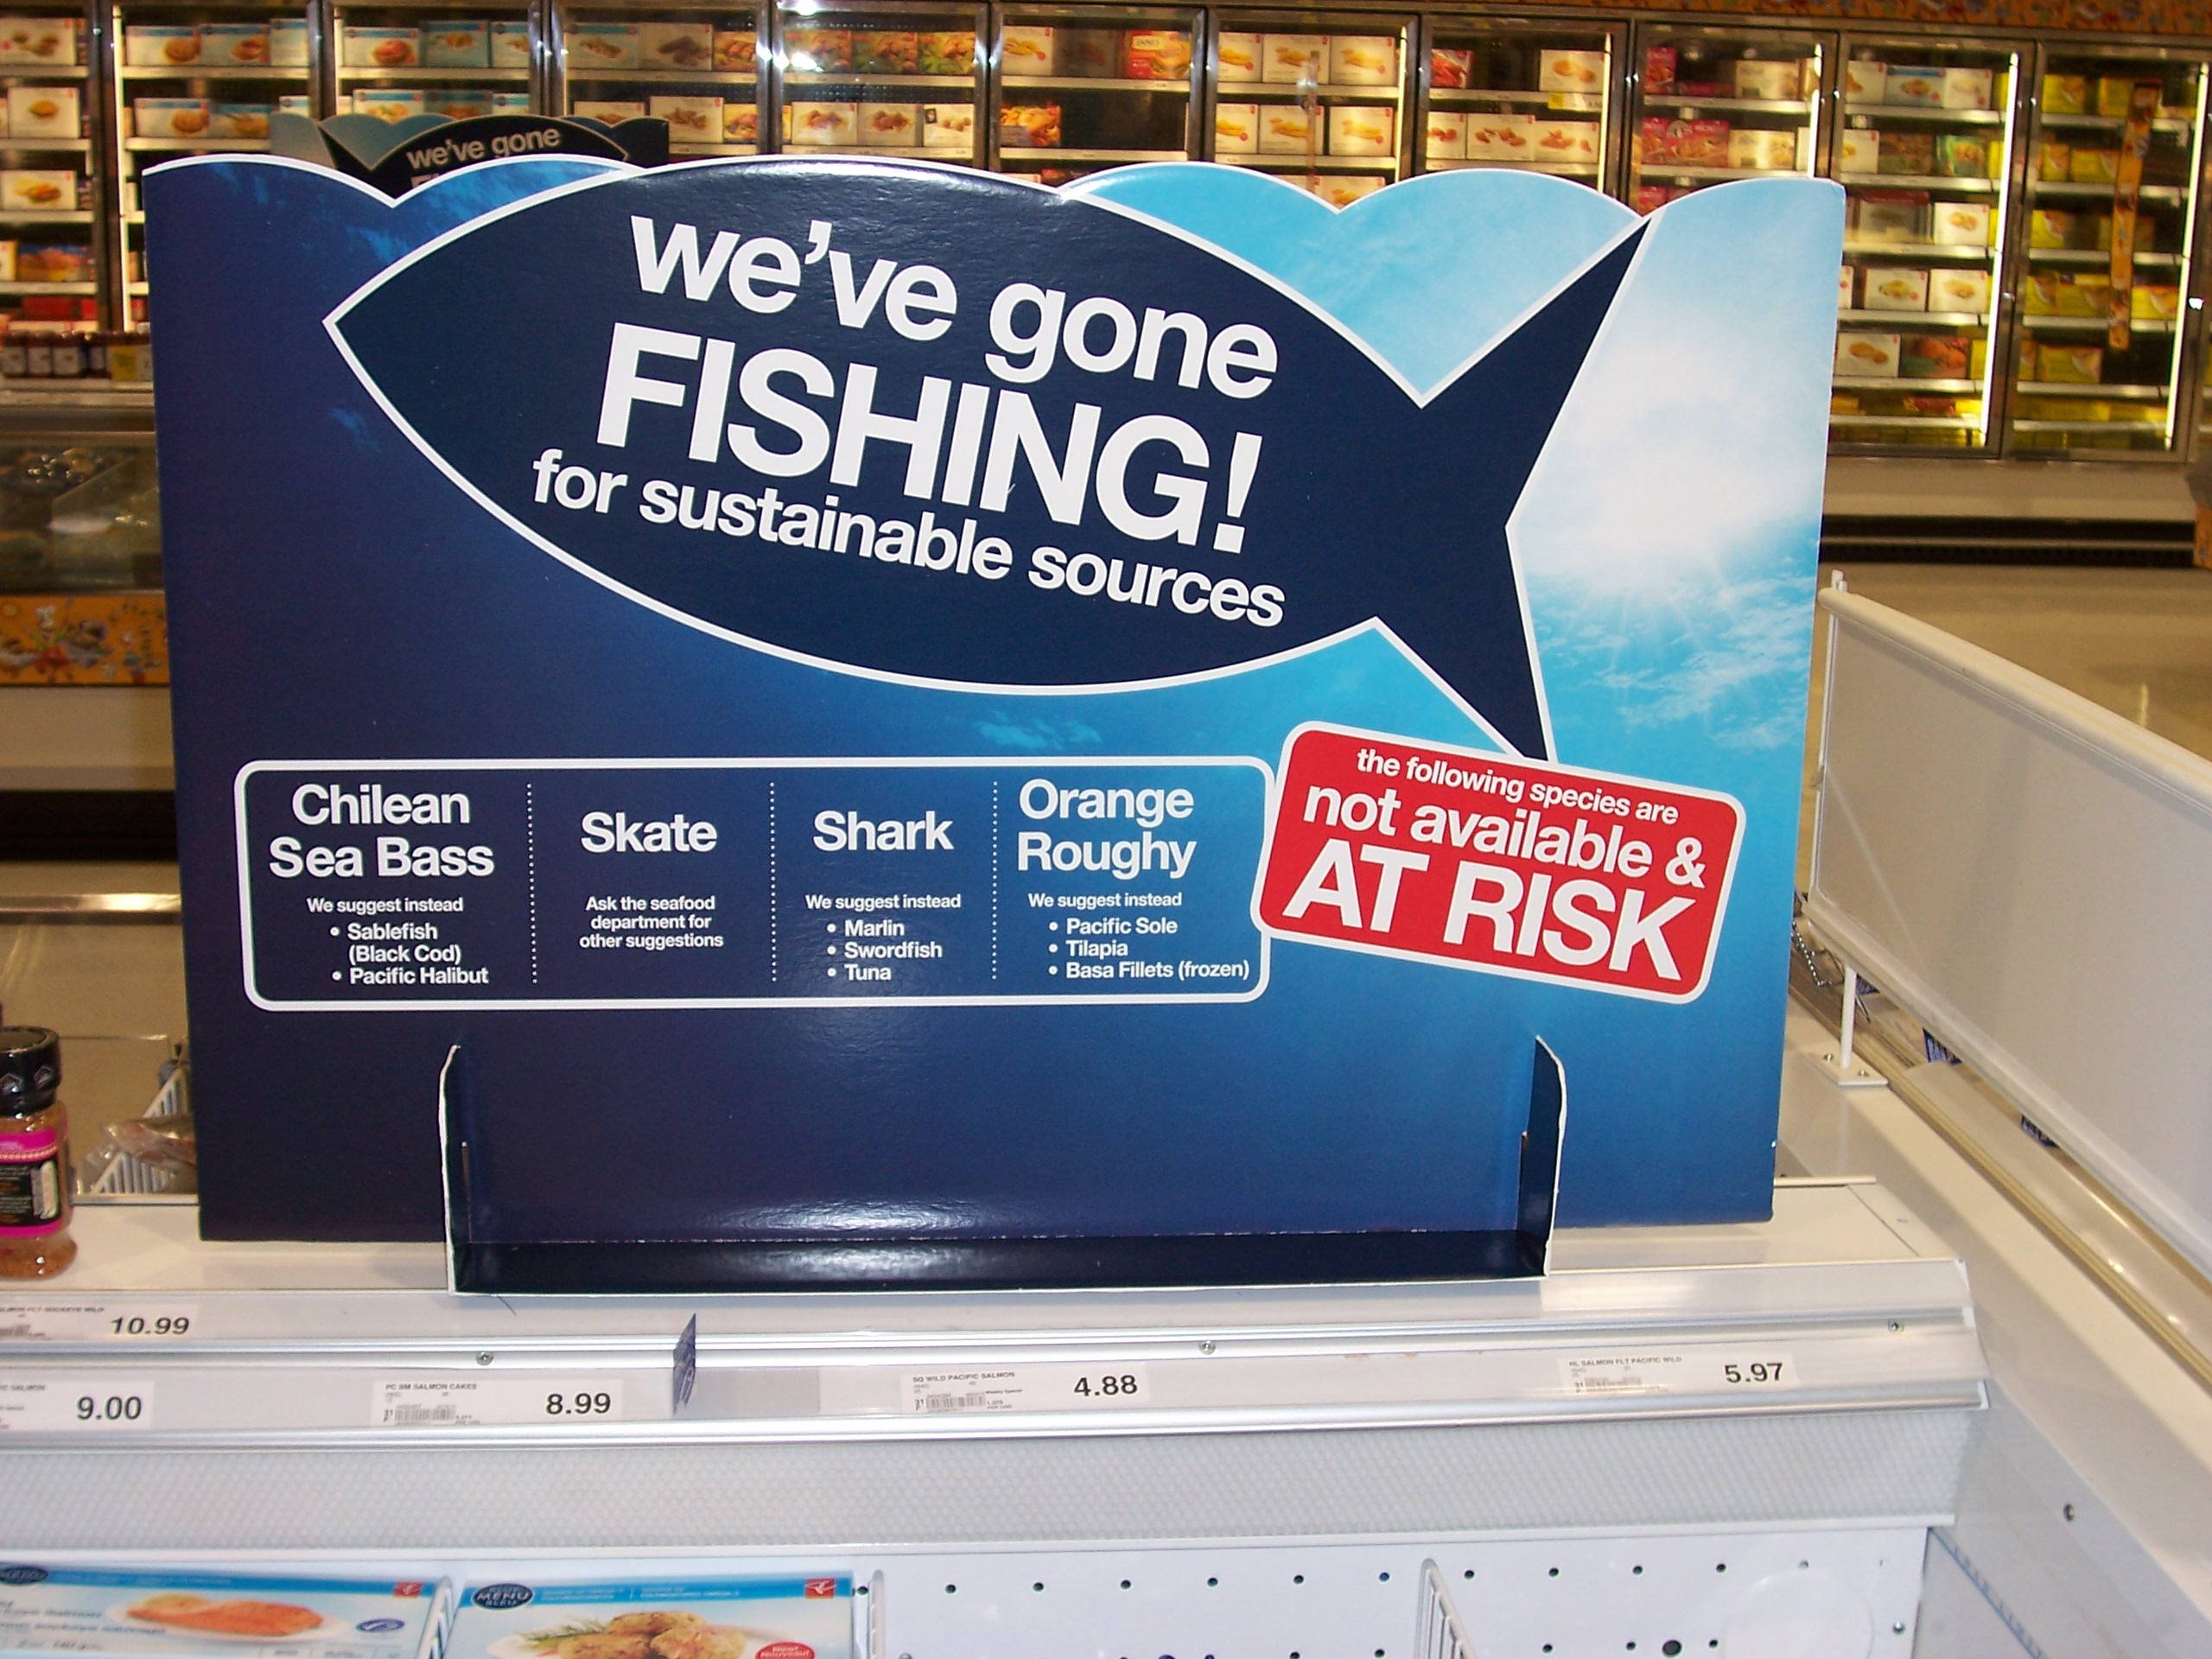 Loblaw's Stance on Overfishing and Seafood Sustainability Commitment